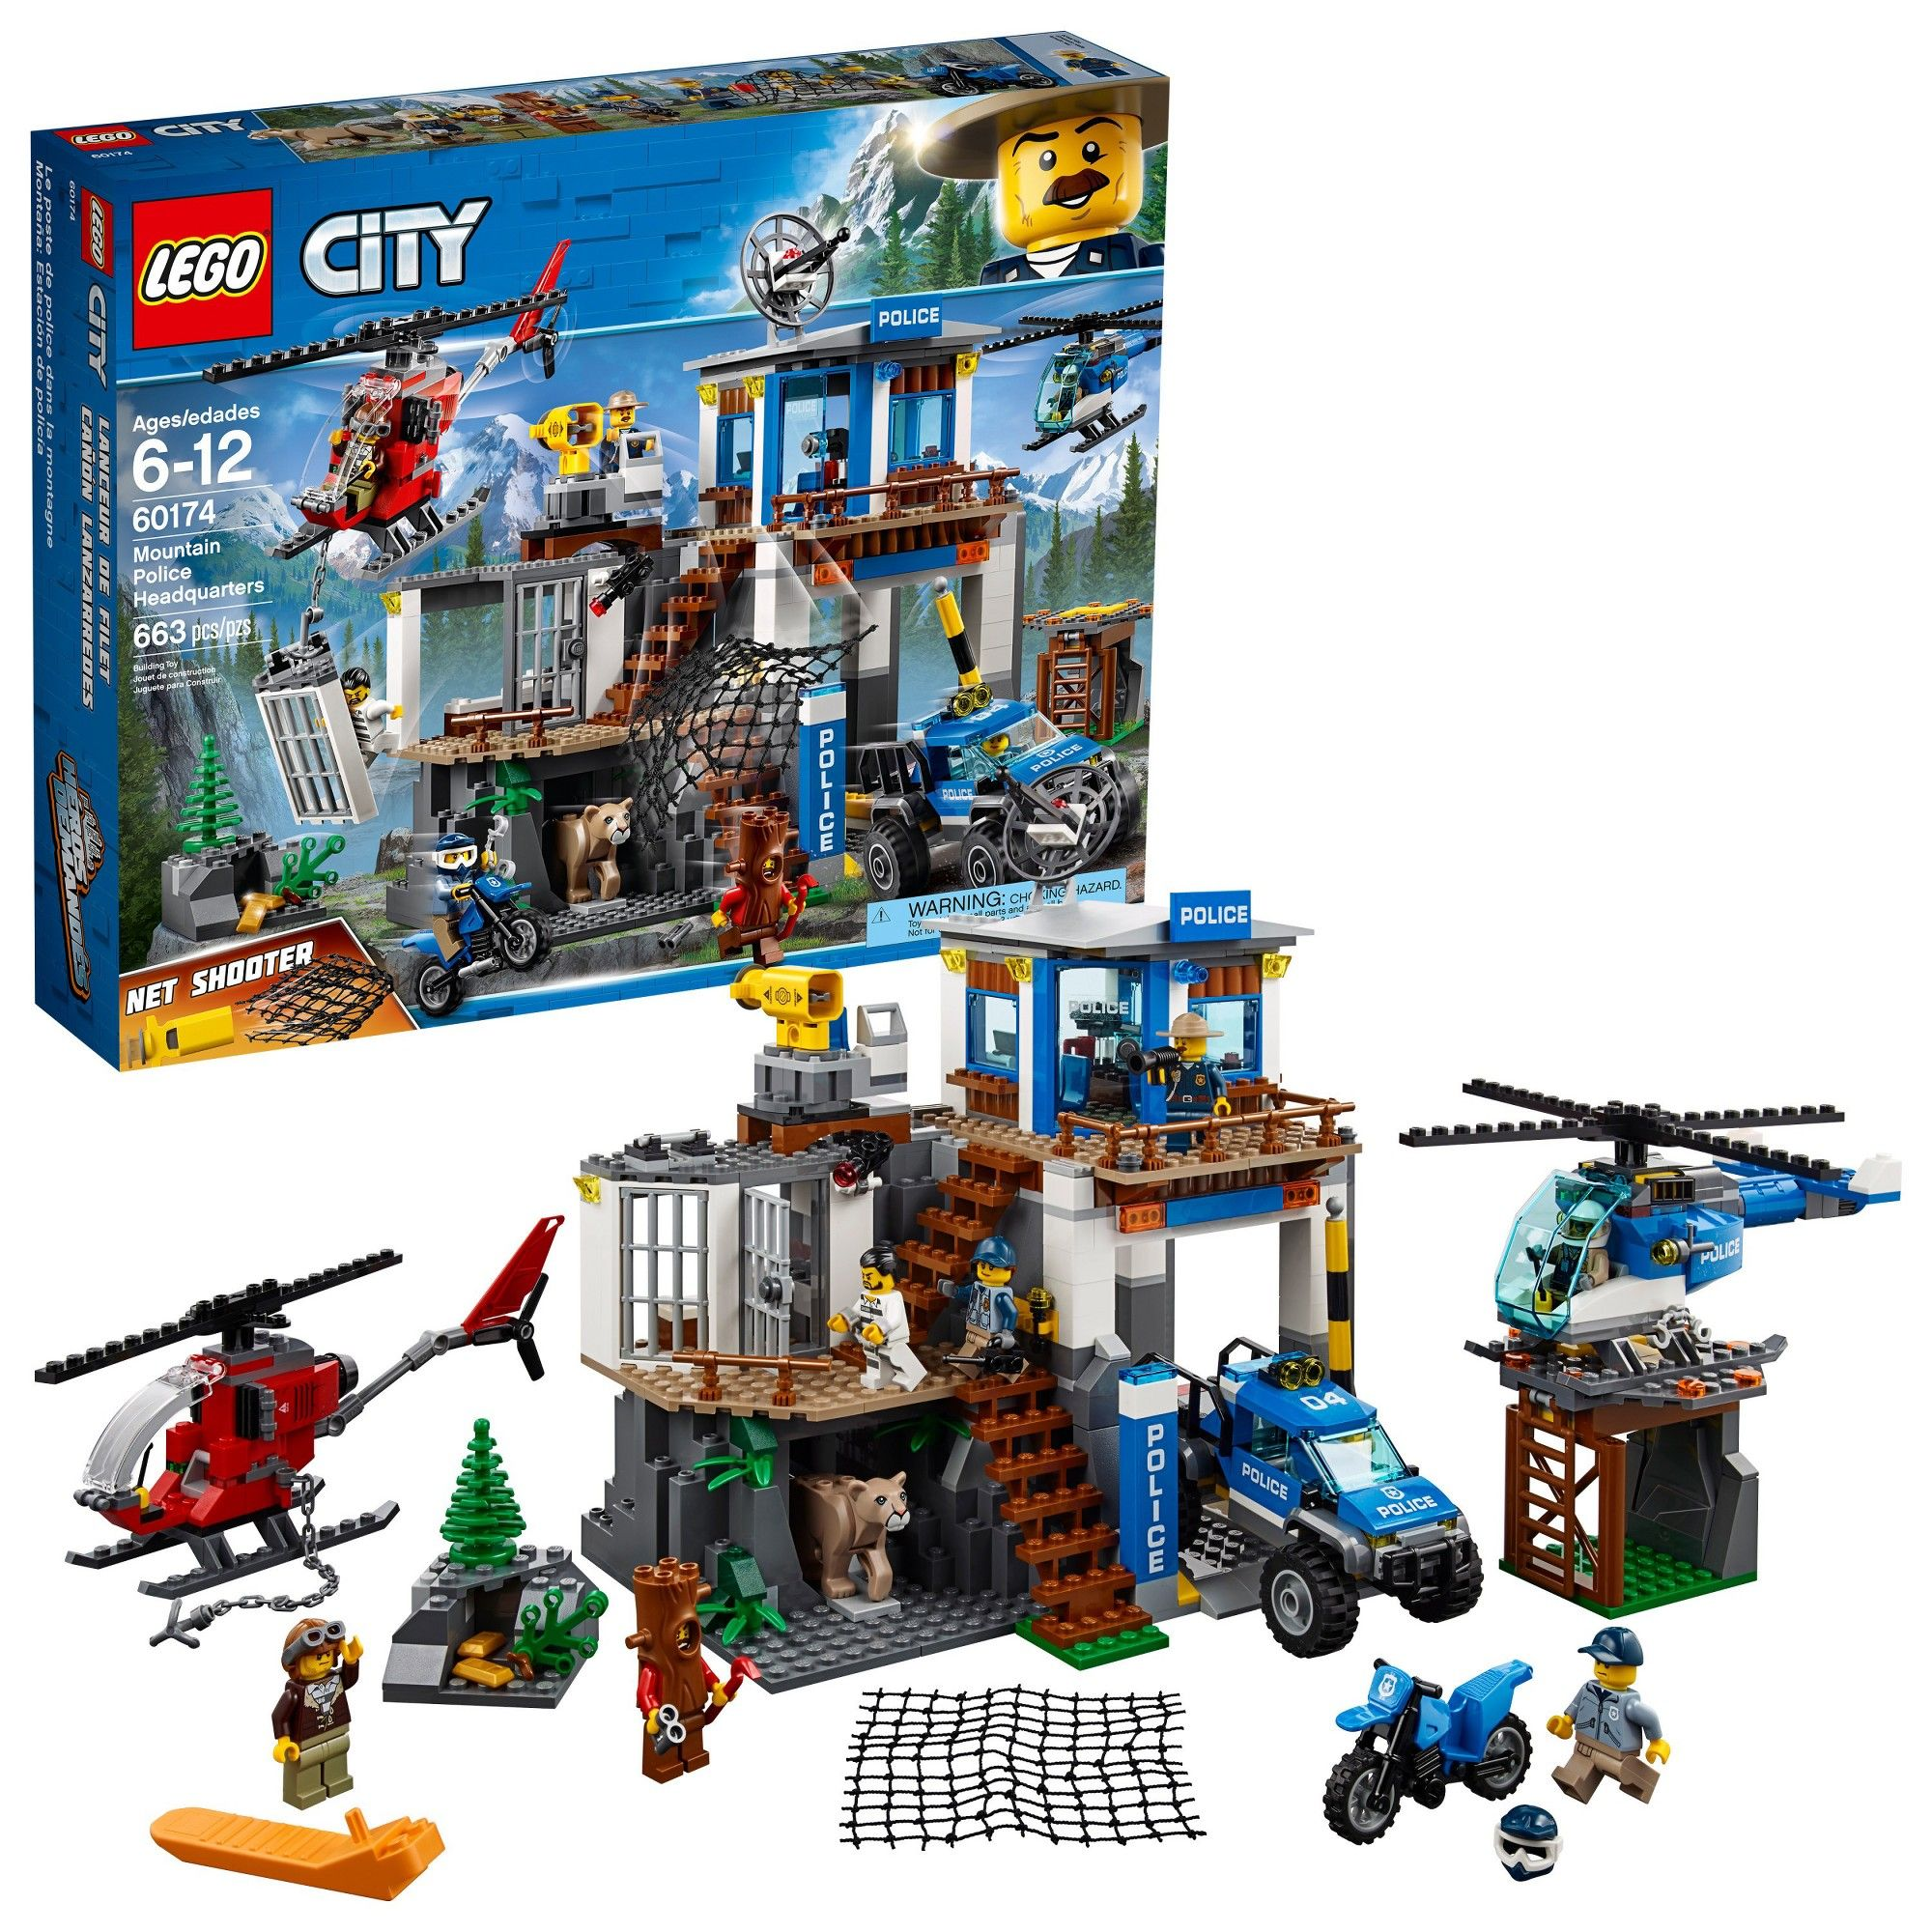 jouet hélicoptère et 4 Lego 60174 city police Mountain Headquarters Building Set